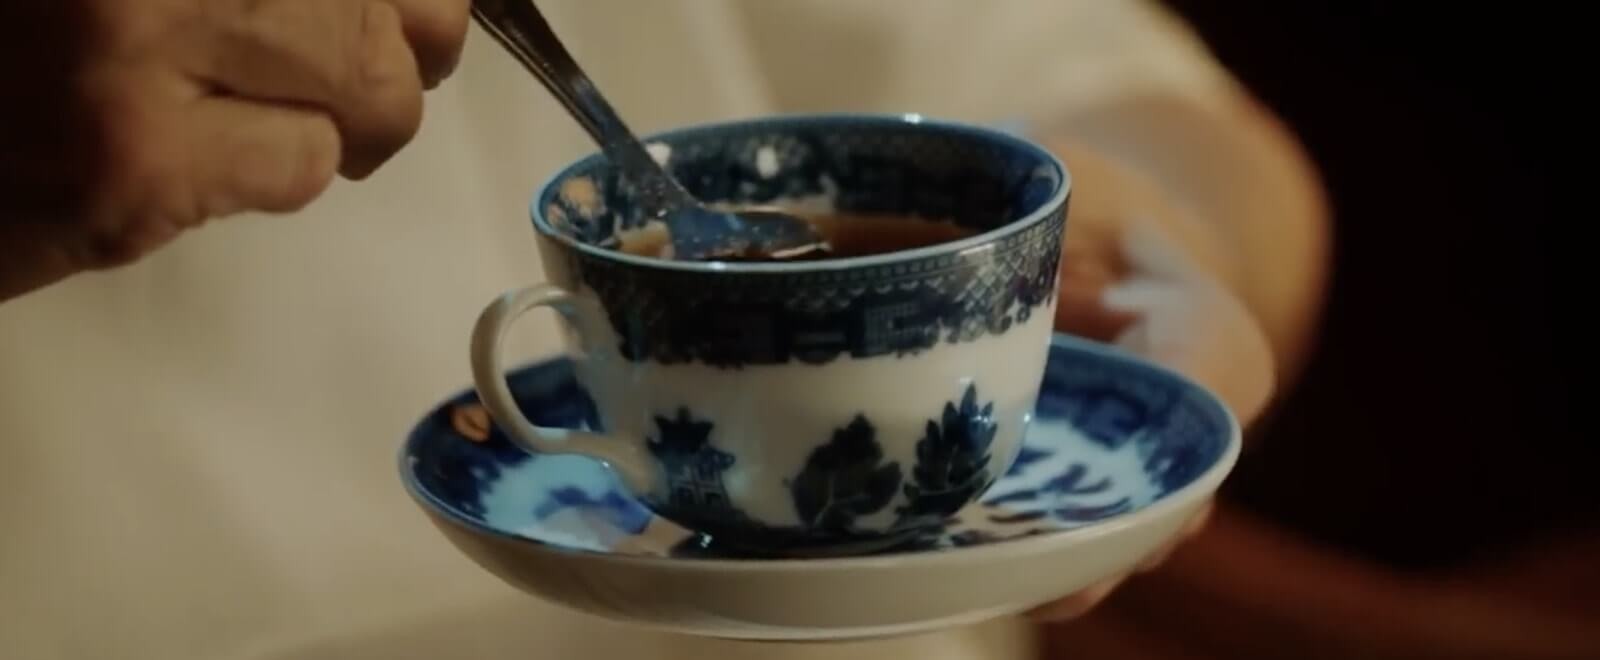 How to Break Down a Scene Sunken Place Teacup